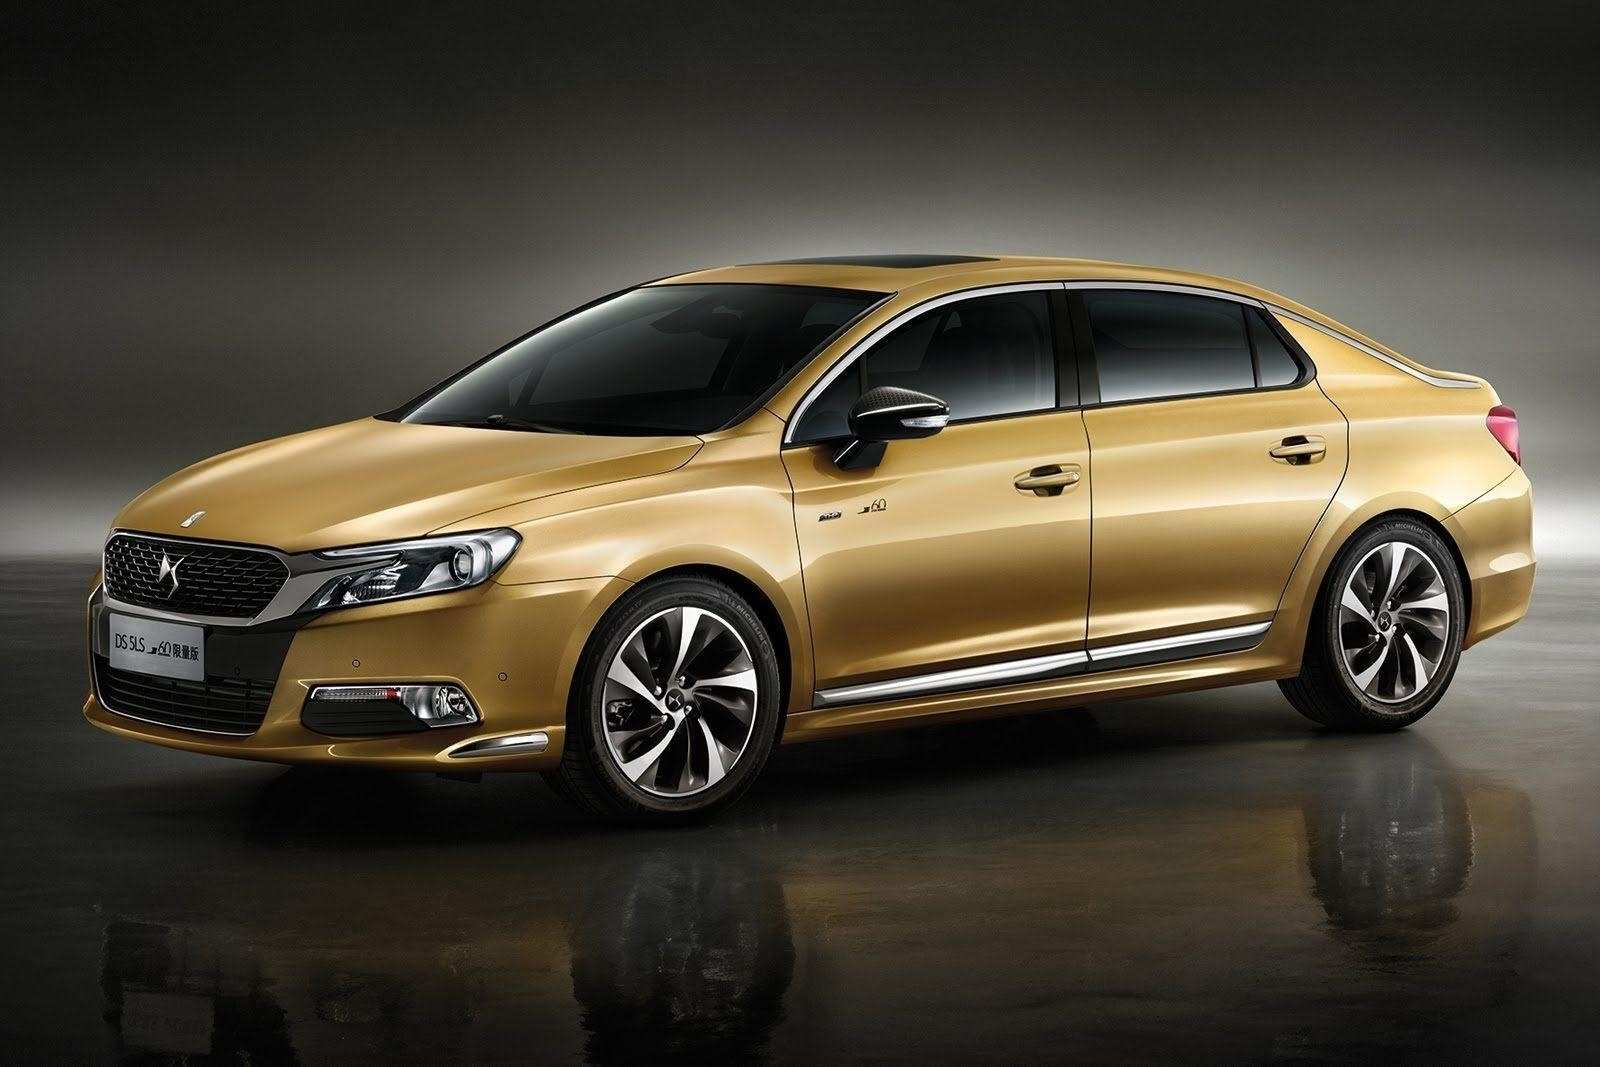 87 New 2020 Citroen DS5 Redesign and Concept with 2020 Citroen DS5